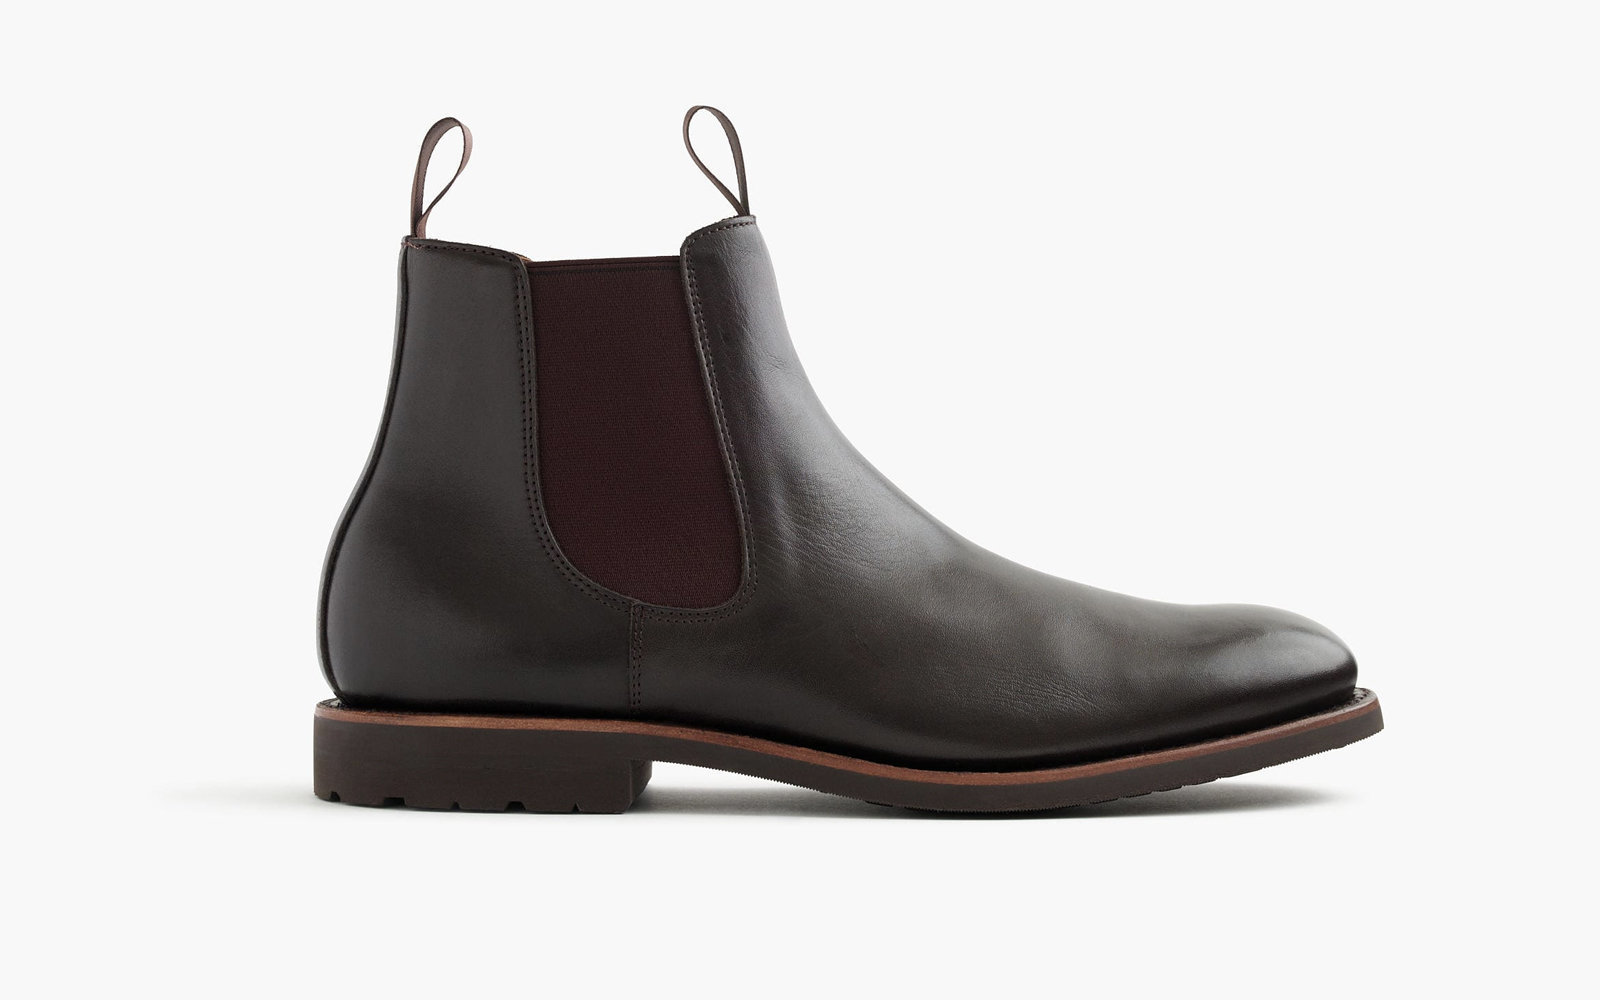 Men's 'Kenton' Leather Chelsea Boots